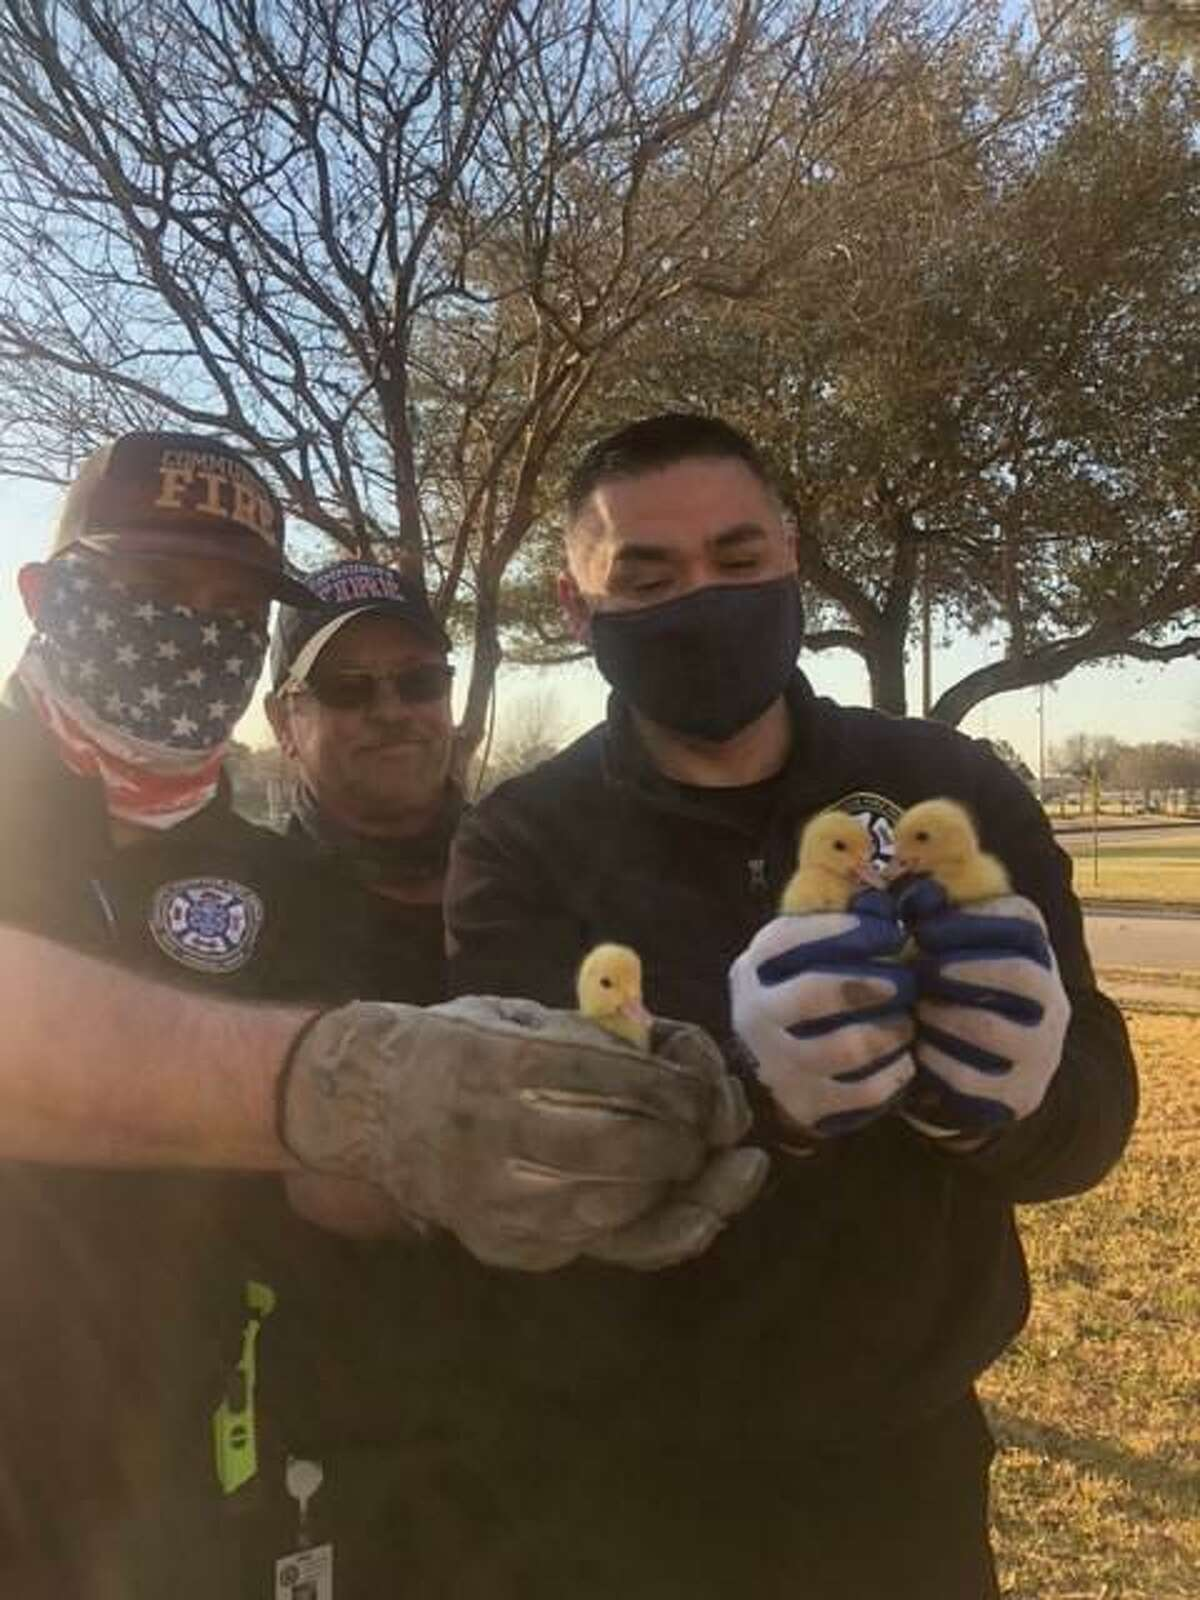 Firefighters from Community Volunteer Fire Department Station 3 rescued three ducklings from a drain outside Montessori House Elementary School in Richmond.